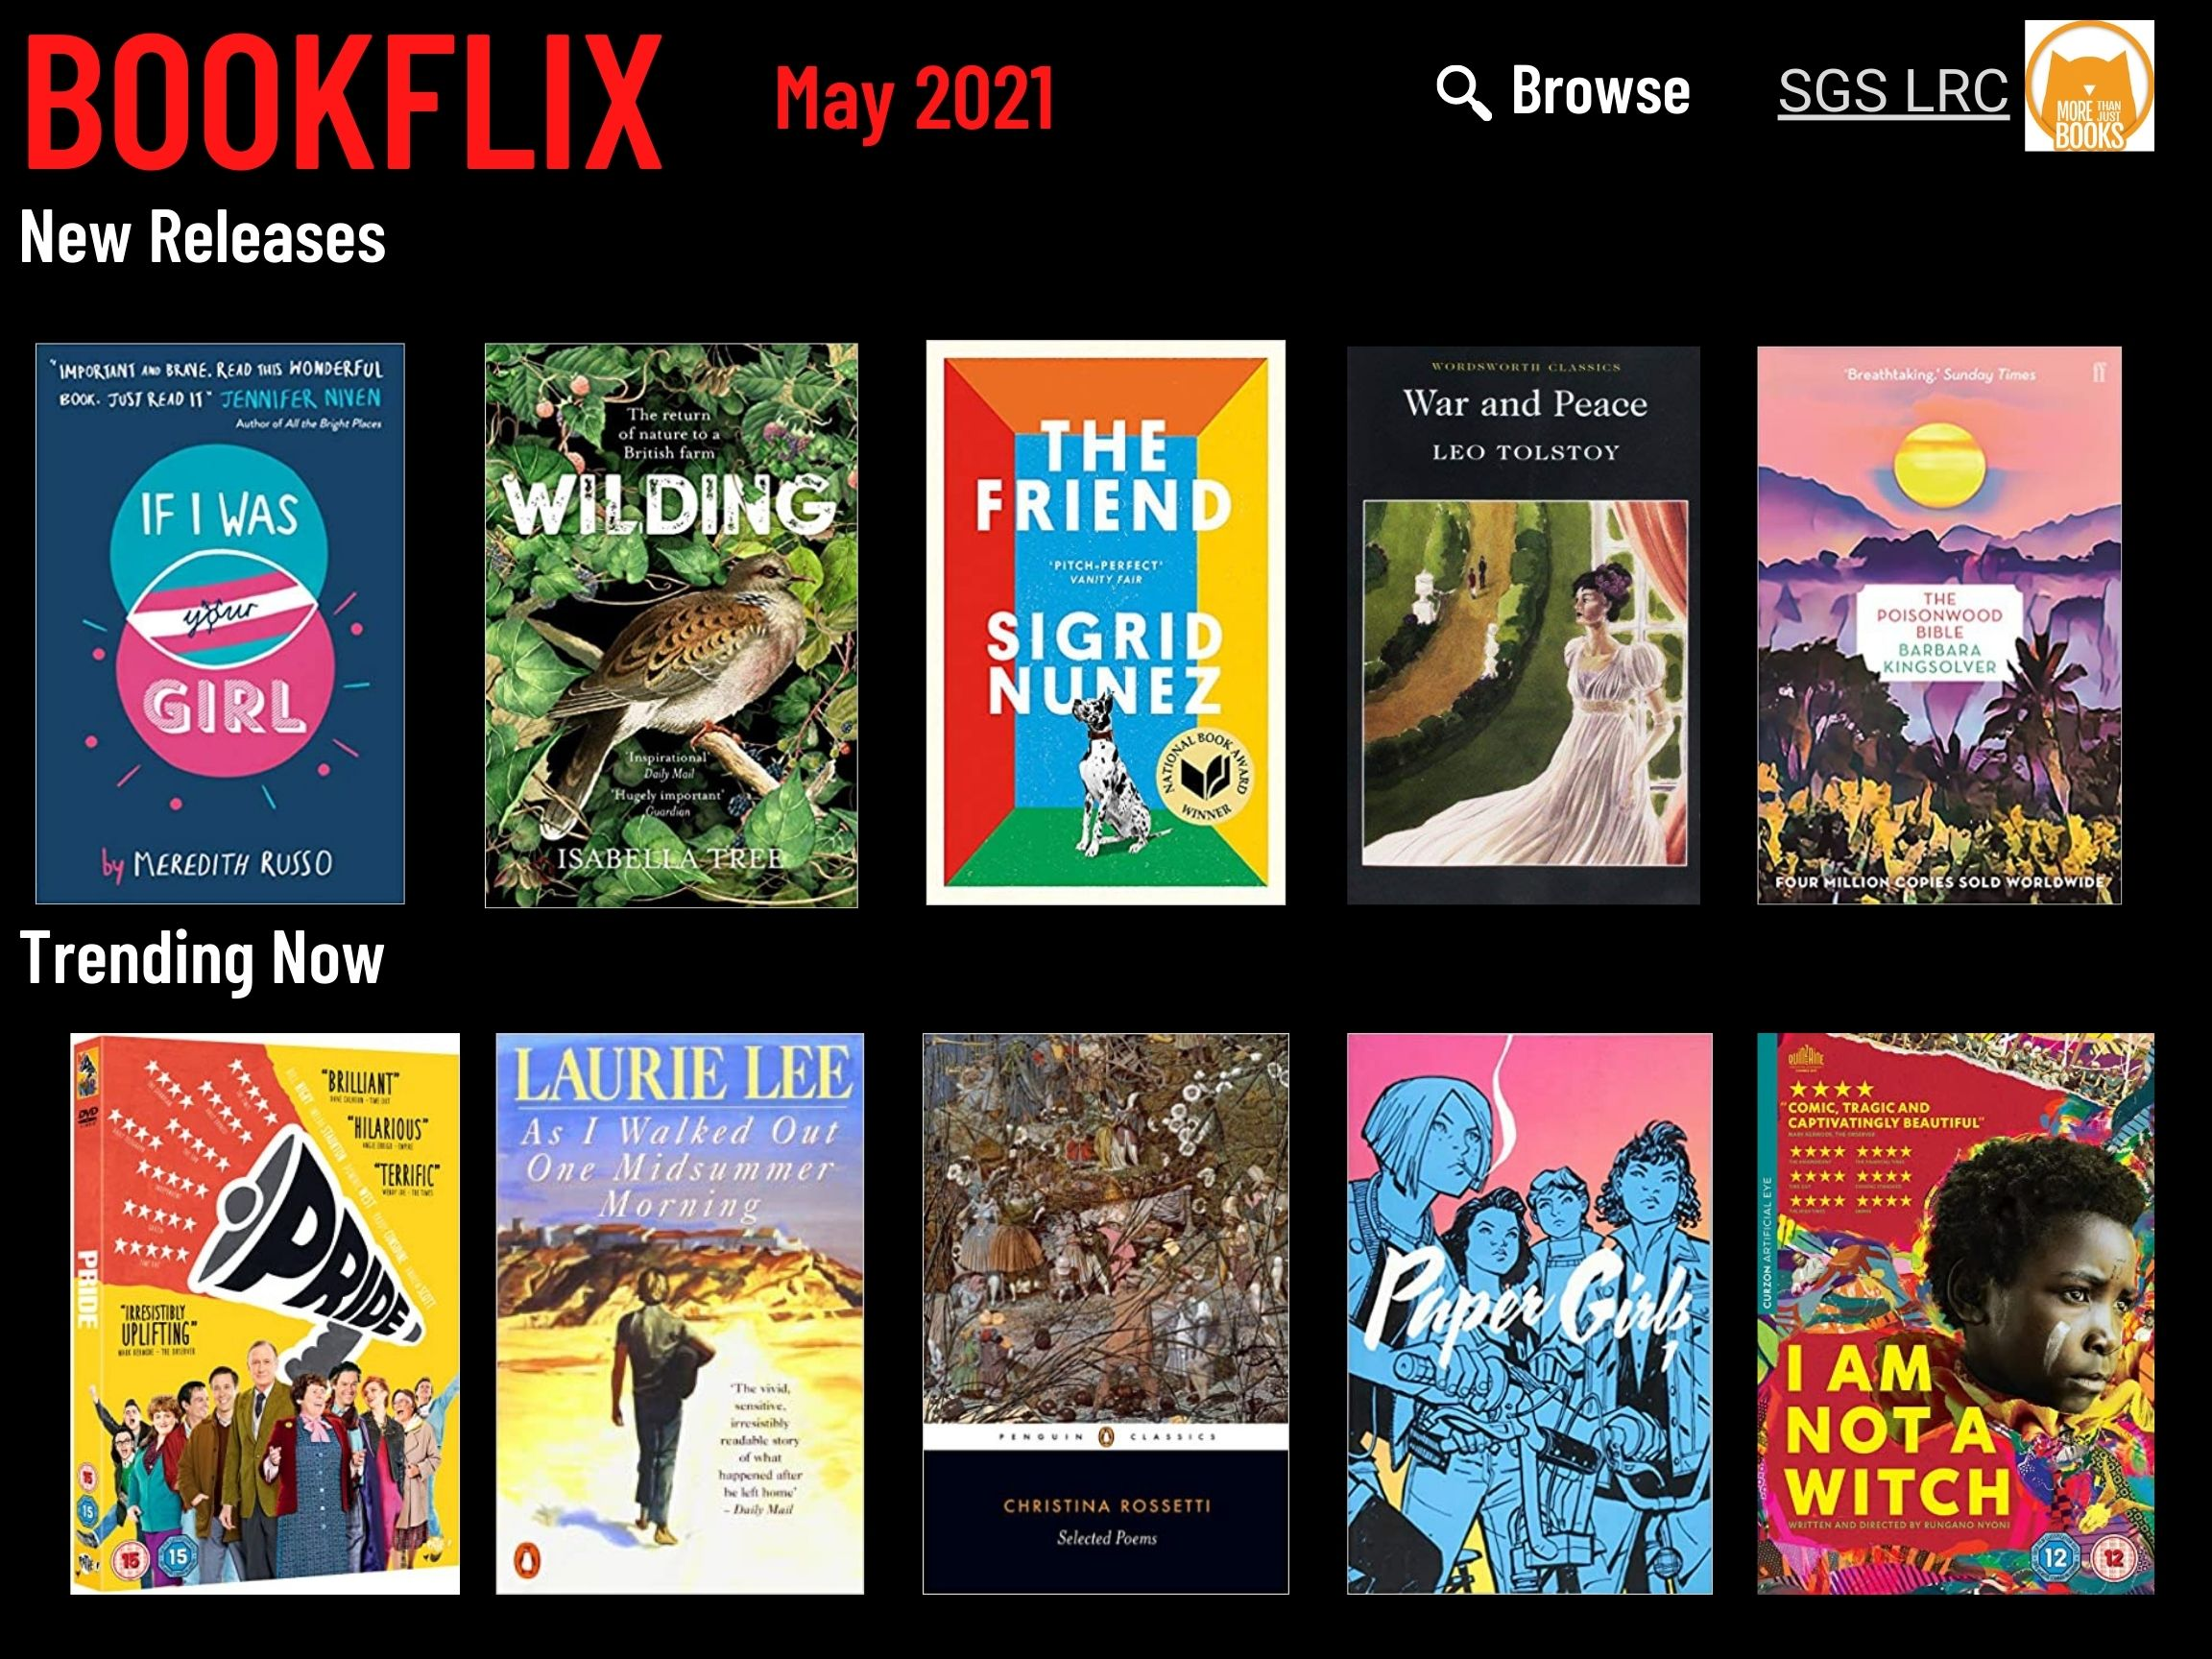 Bookflix page one. Text reads: Bookflix -May 2021. The page has 10 images of book/dvd covers. These are all listed in order in the body text below the images.